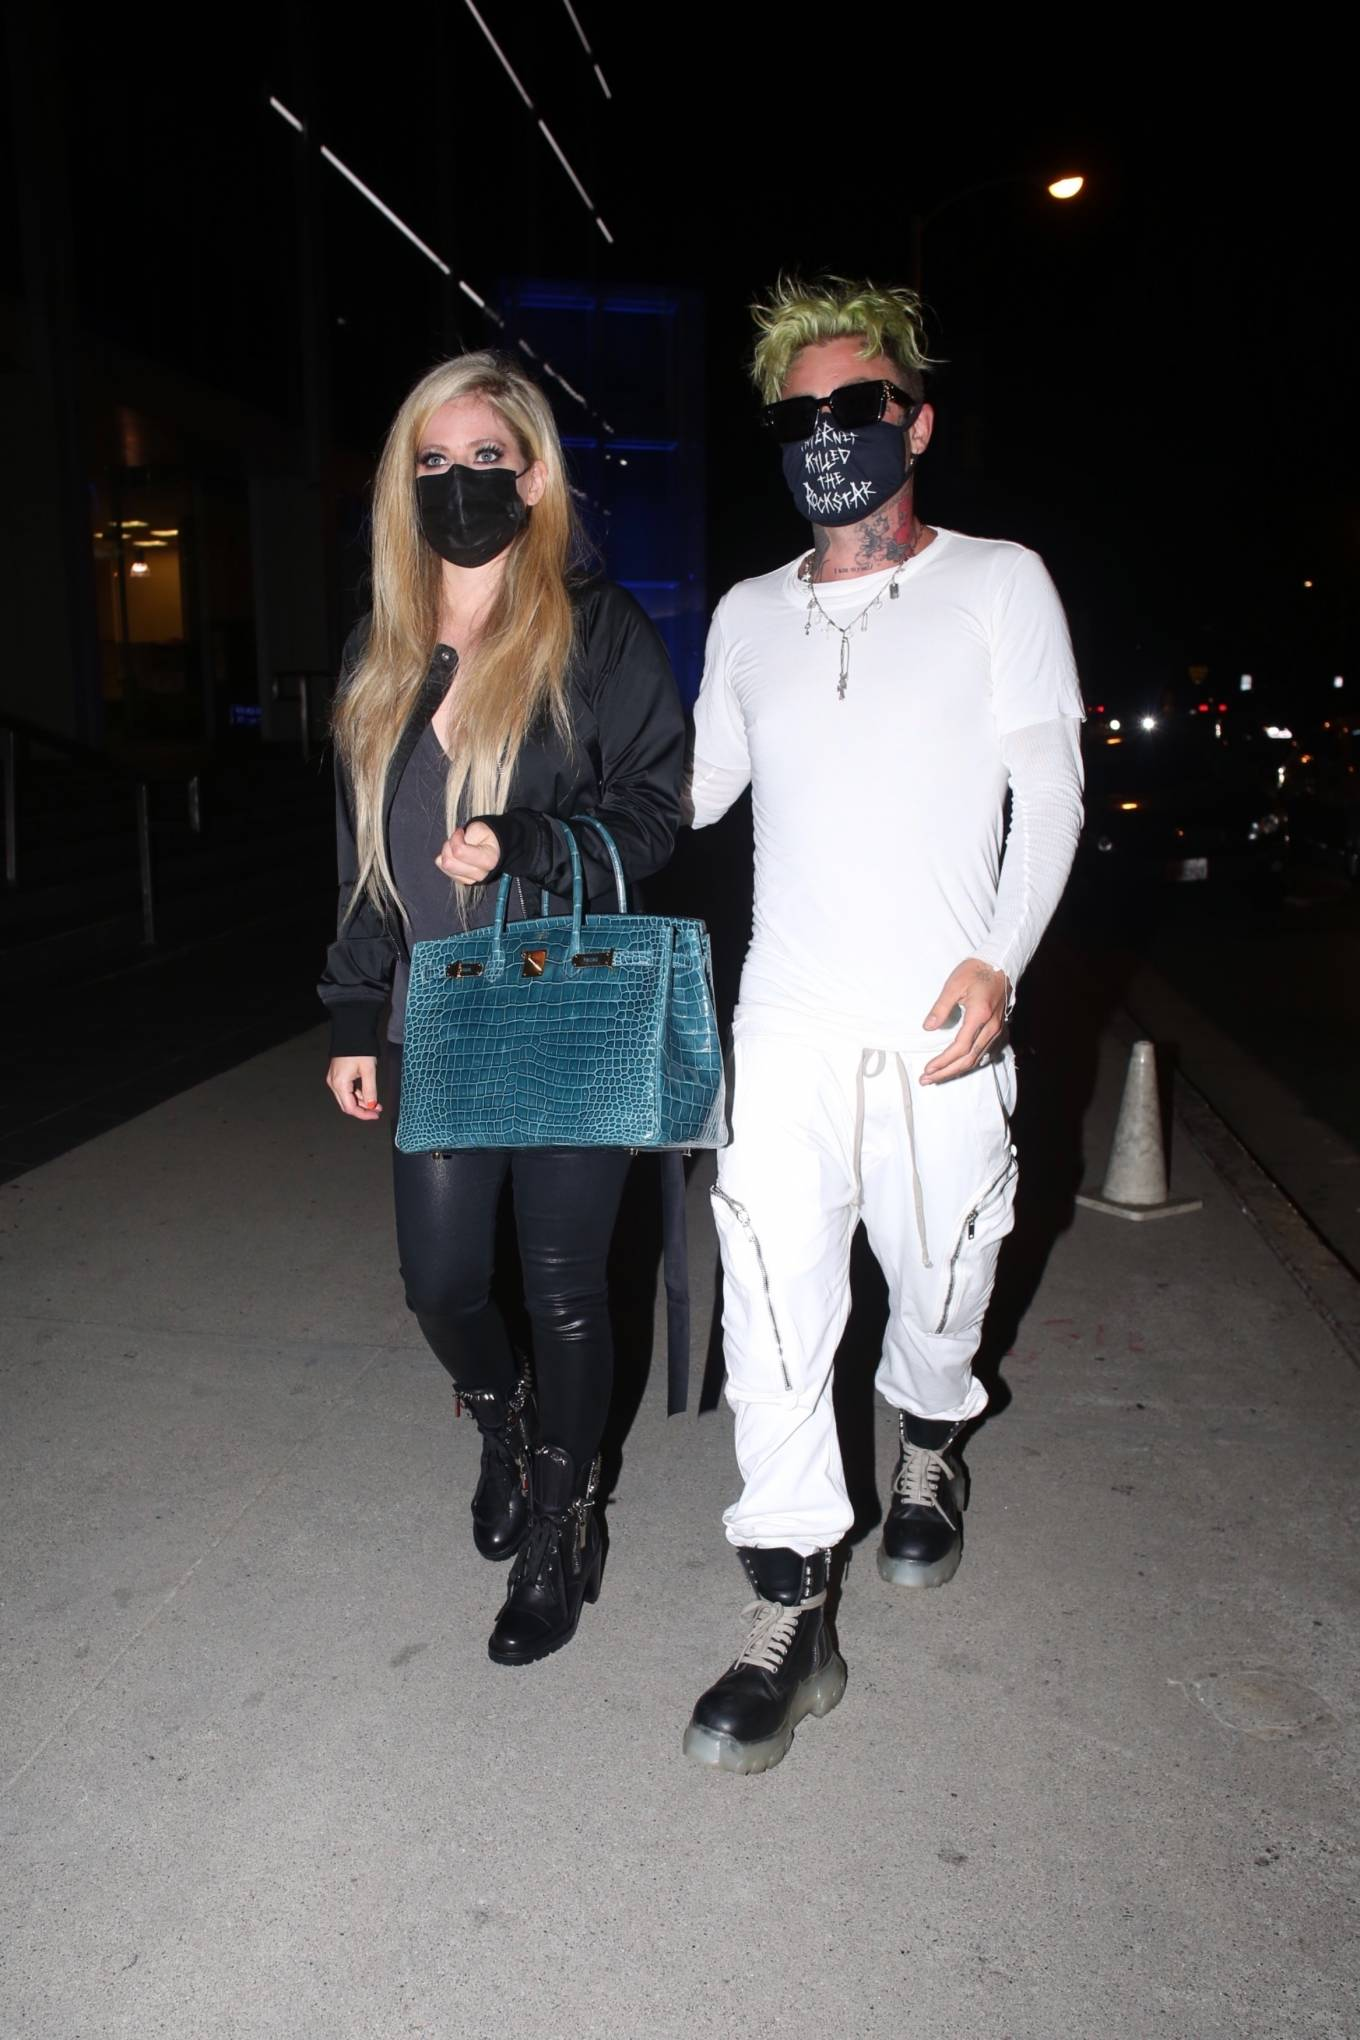 Avril Lavigne - Pictured at BOA Steakhouse in Los Angeles